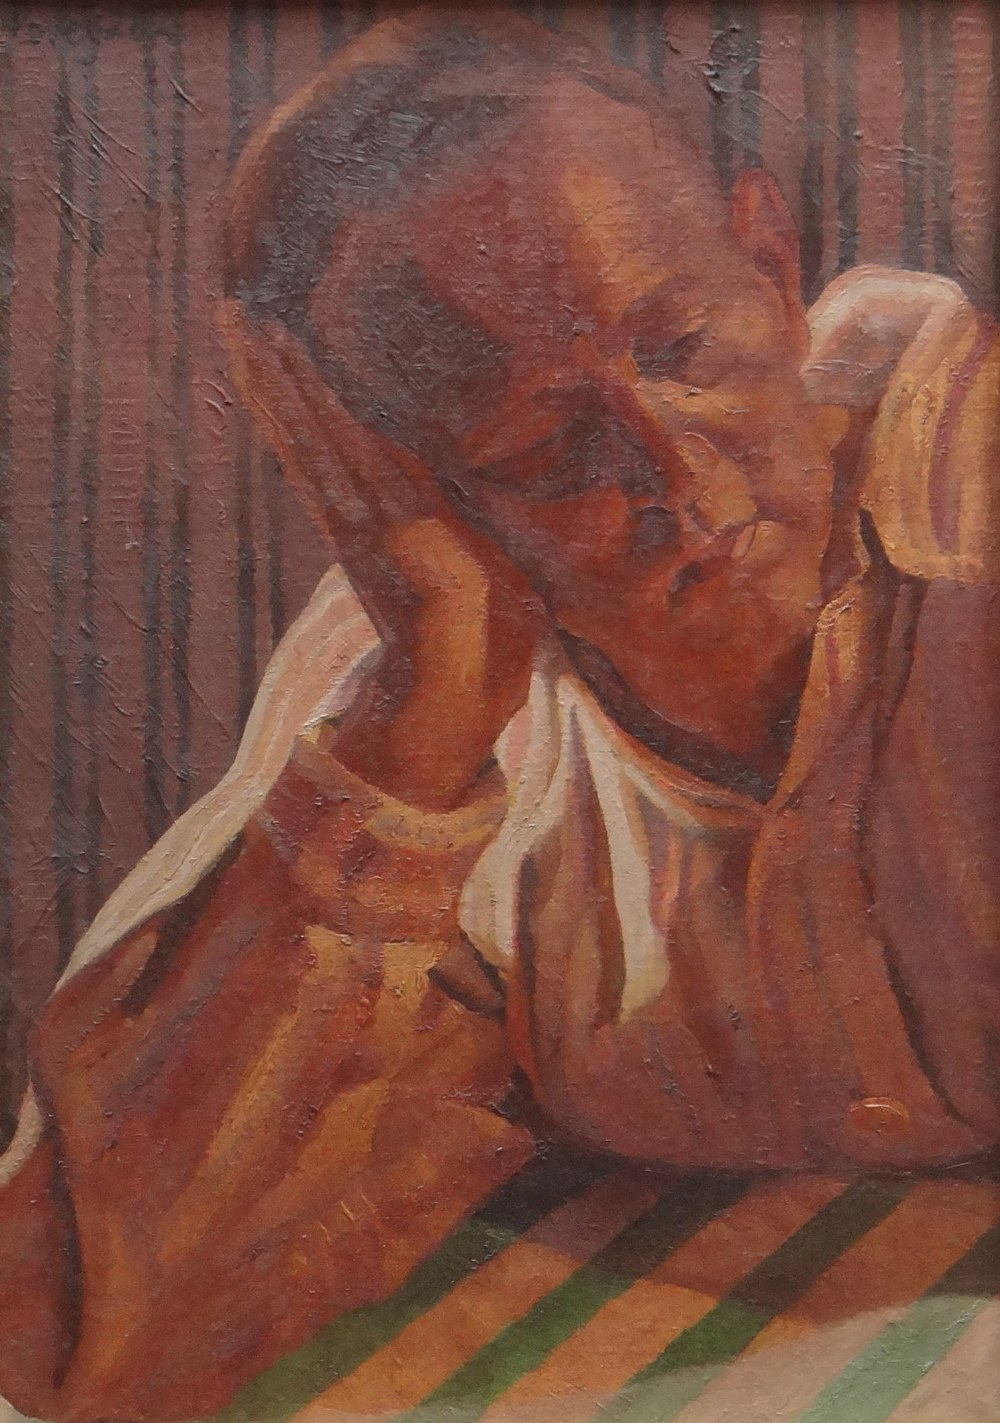 ED POVEY oil on canvas - entitled label verso 'Permanence', signed and dated 2002, 33.5 x 23.5cms